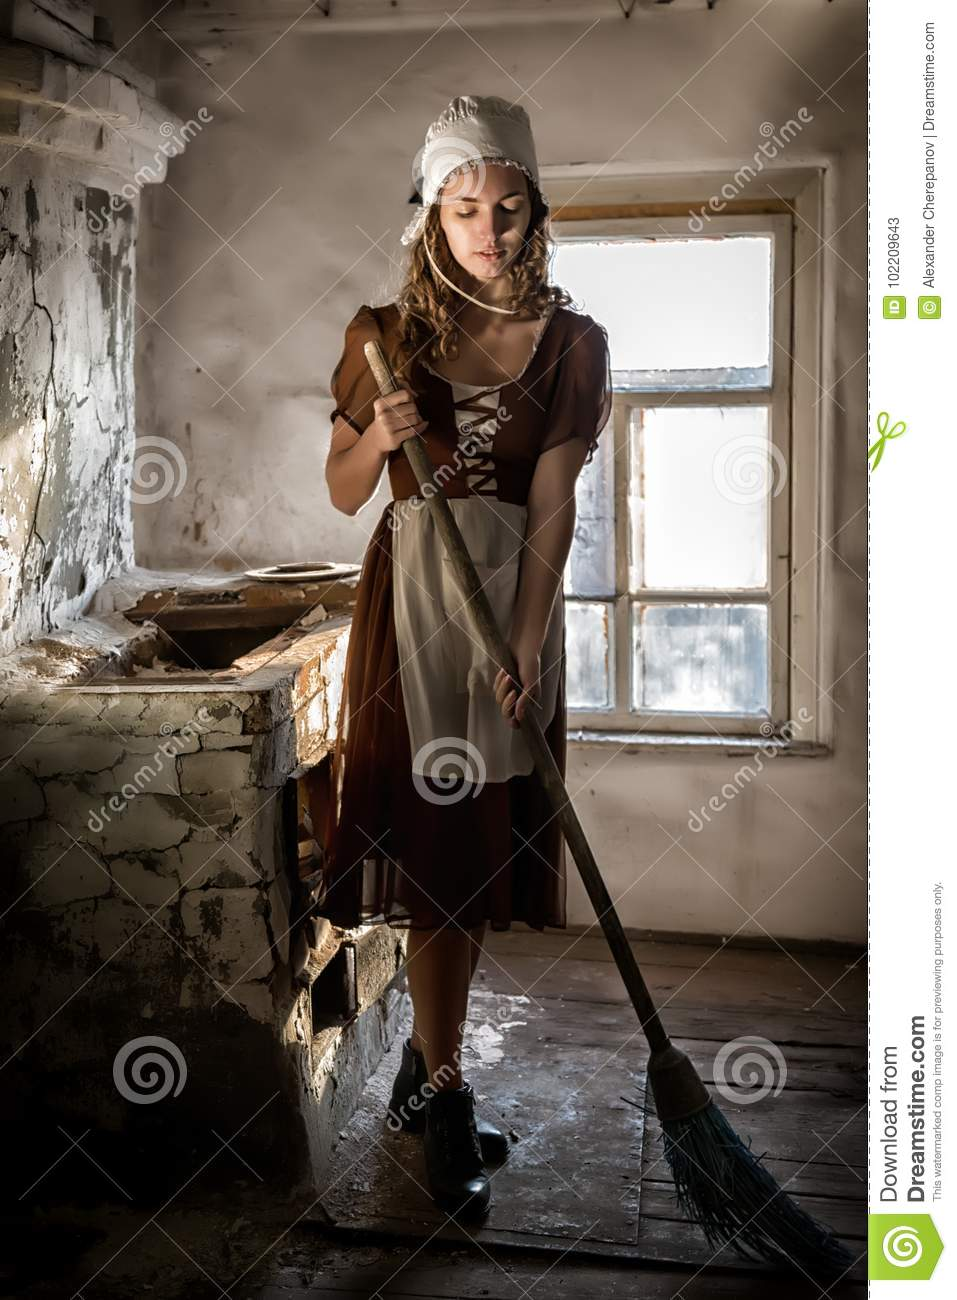 Woman in a rustic dress sweeps the wooden floor in the kitchen